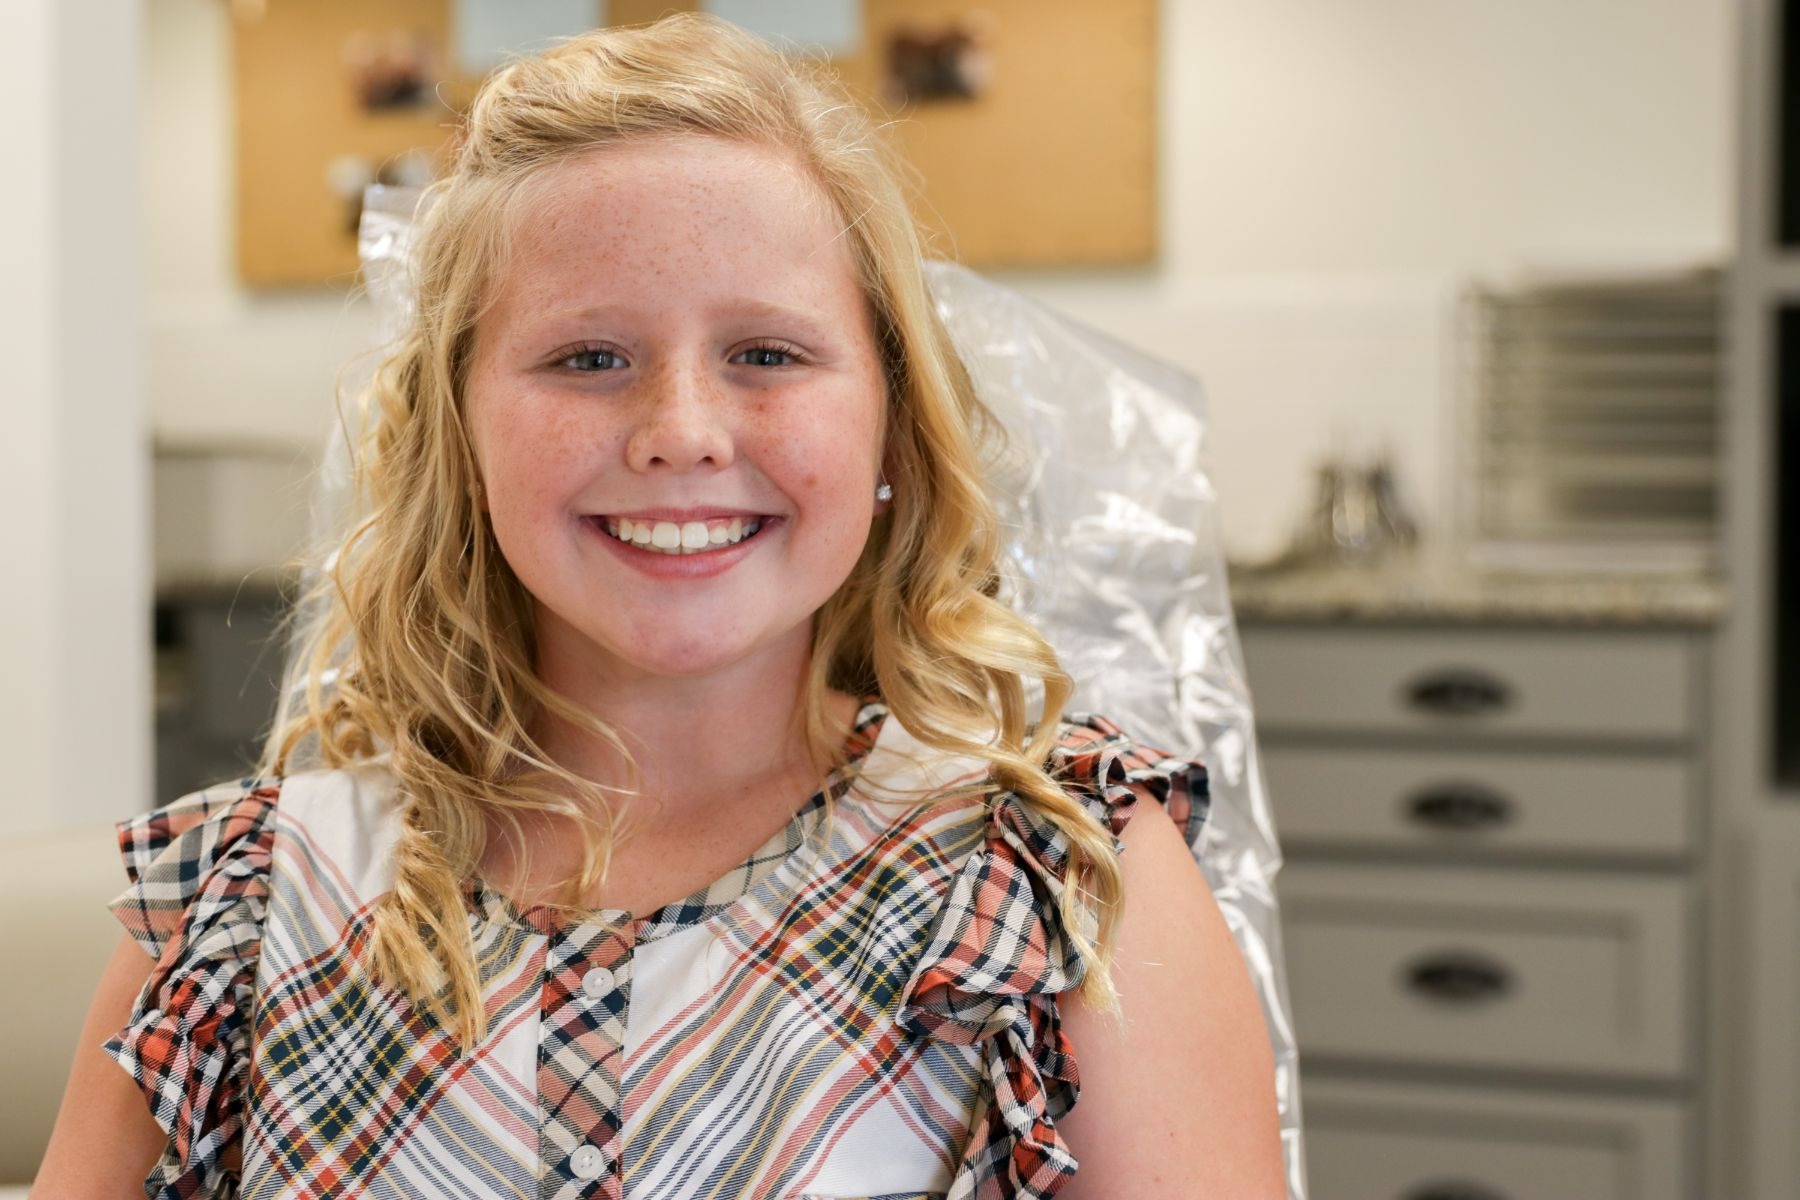 Why Your Child Should See An Orthodontist By Age 7